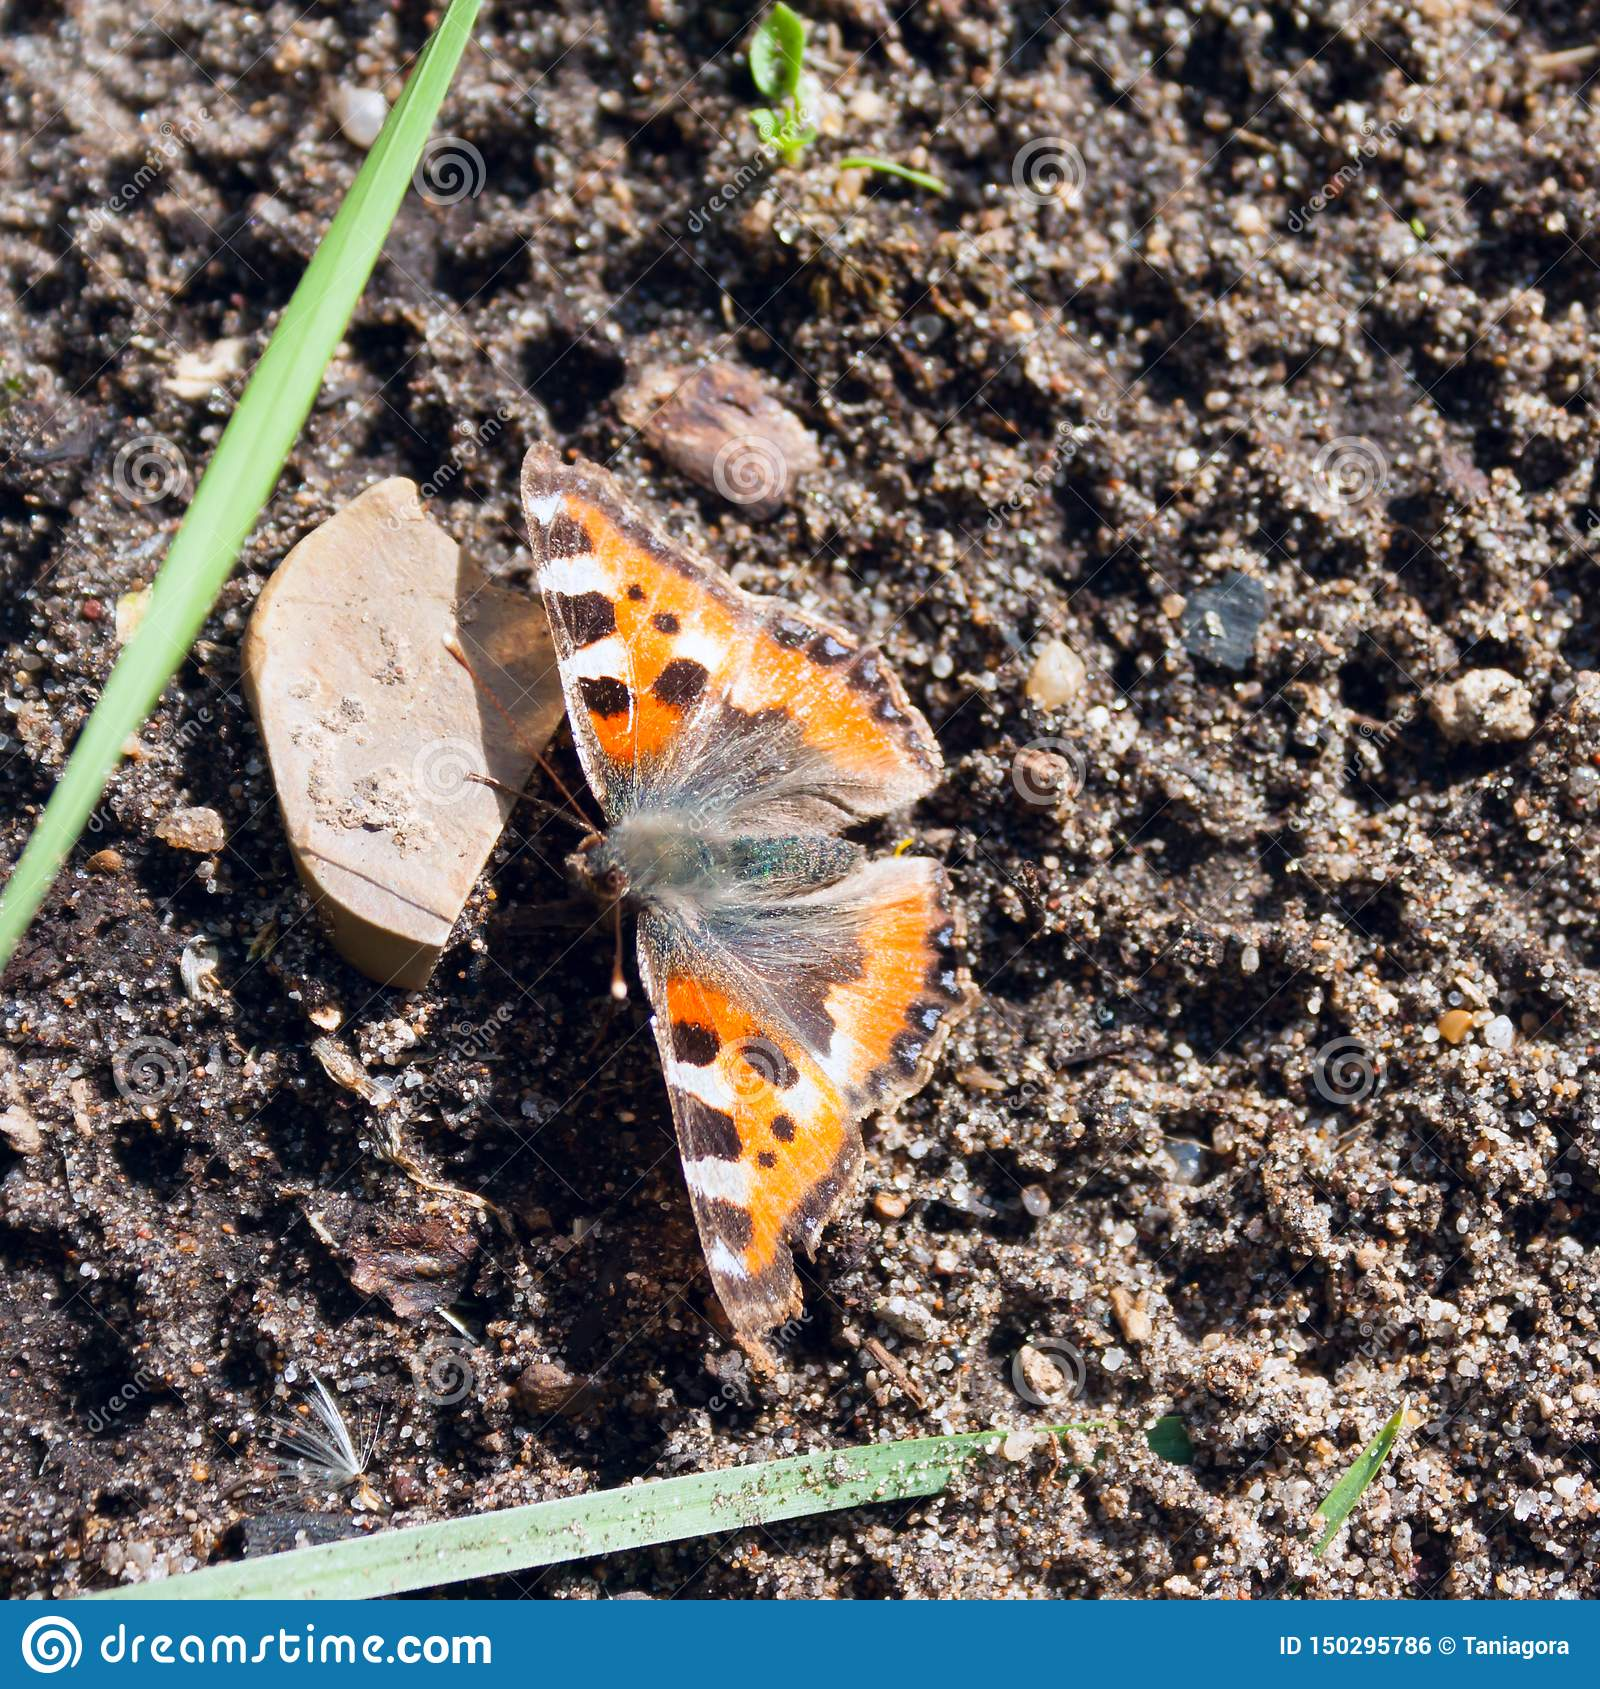 One orange butterfly Aglais urticae on the ground